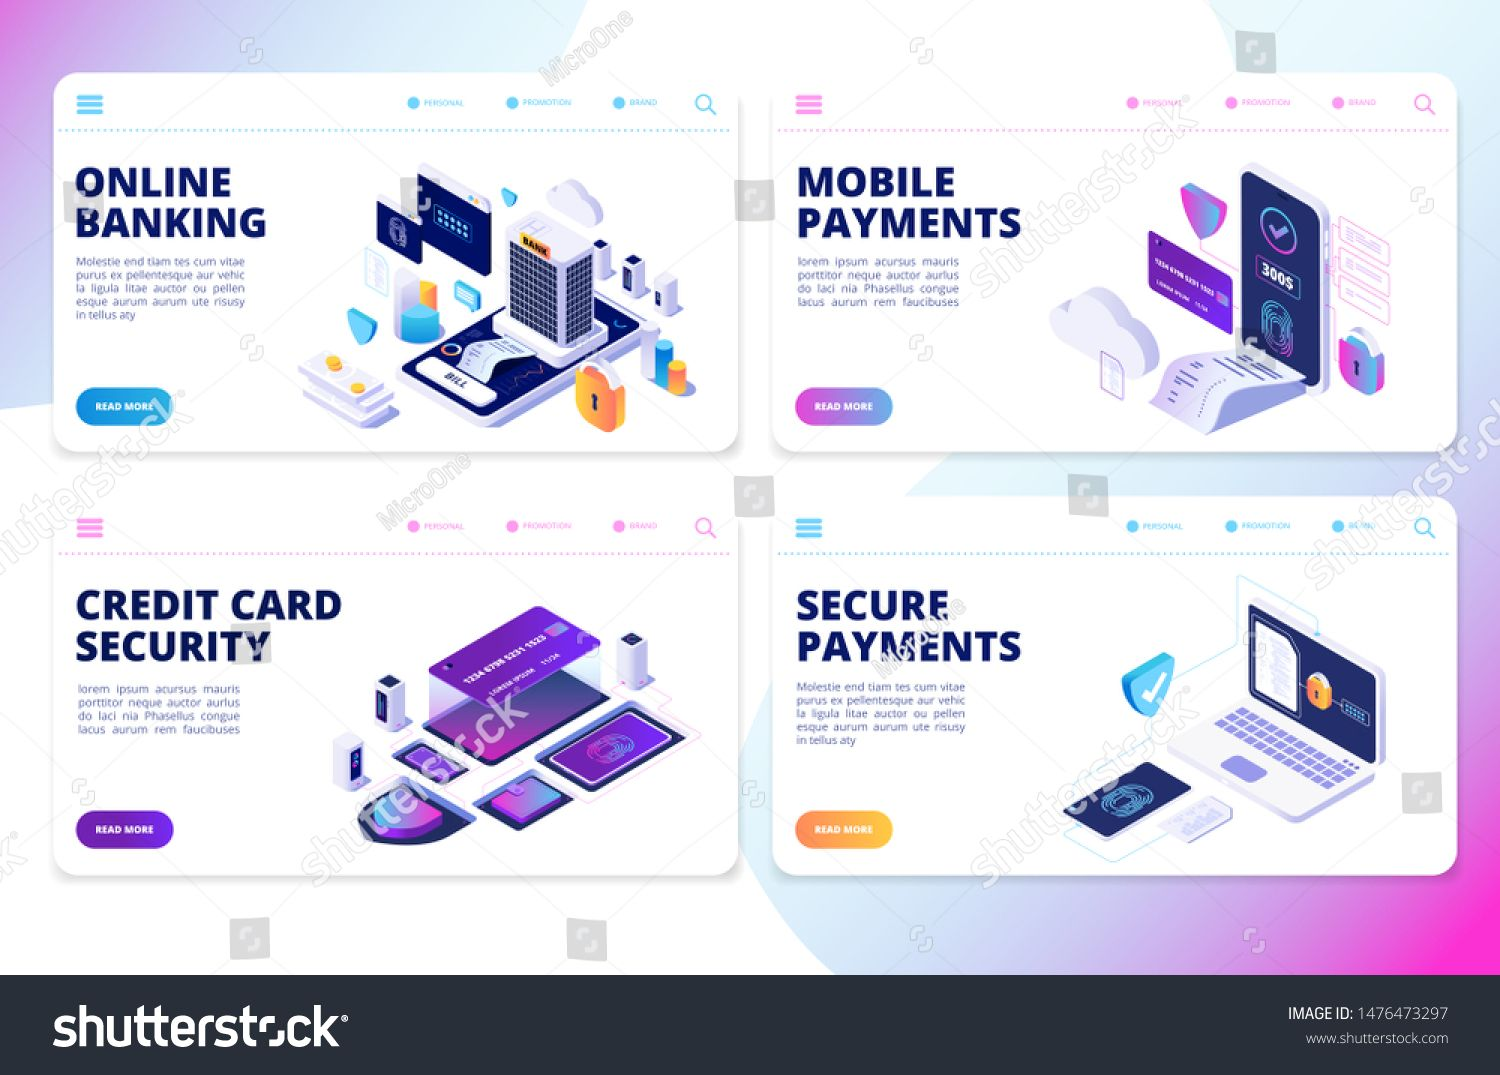 Online Banking Landing Page Mobile Payments Credit Card Security Vector Banners Mobile Finance Transfer T Online Banking Mobile Payments Secure Credit Card